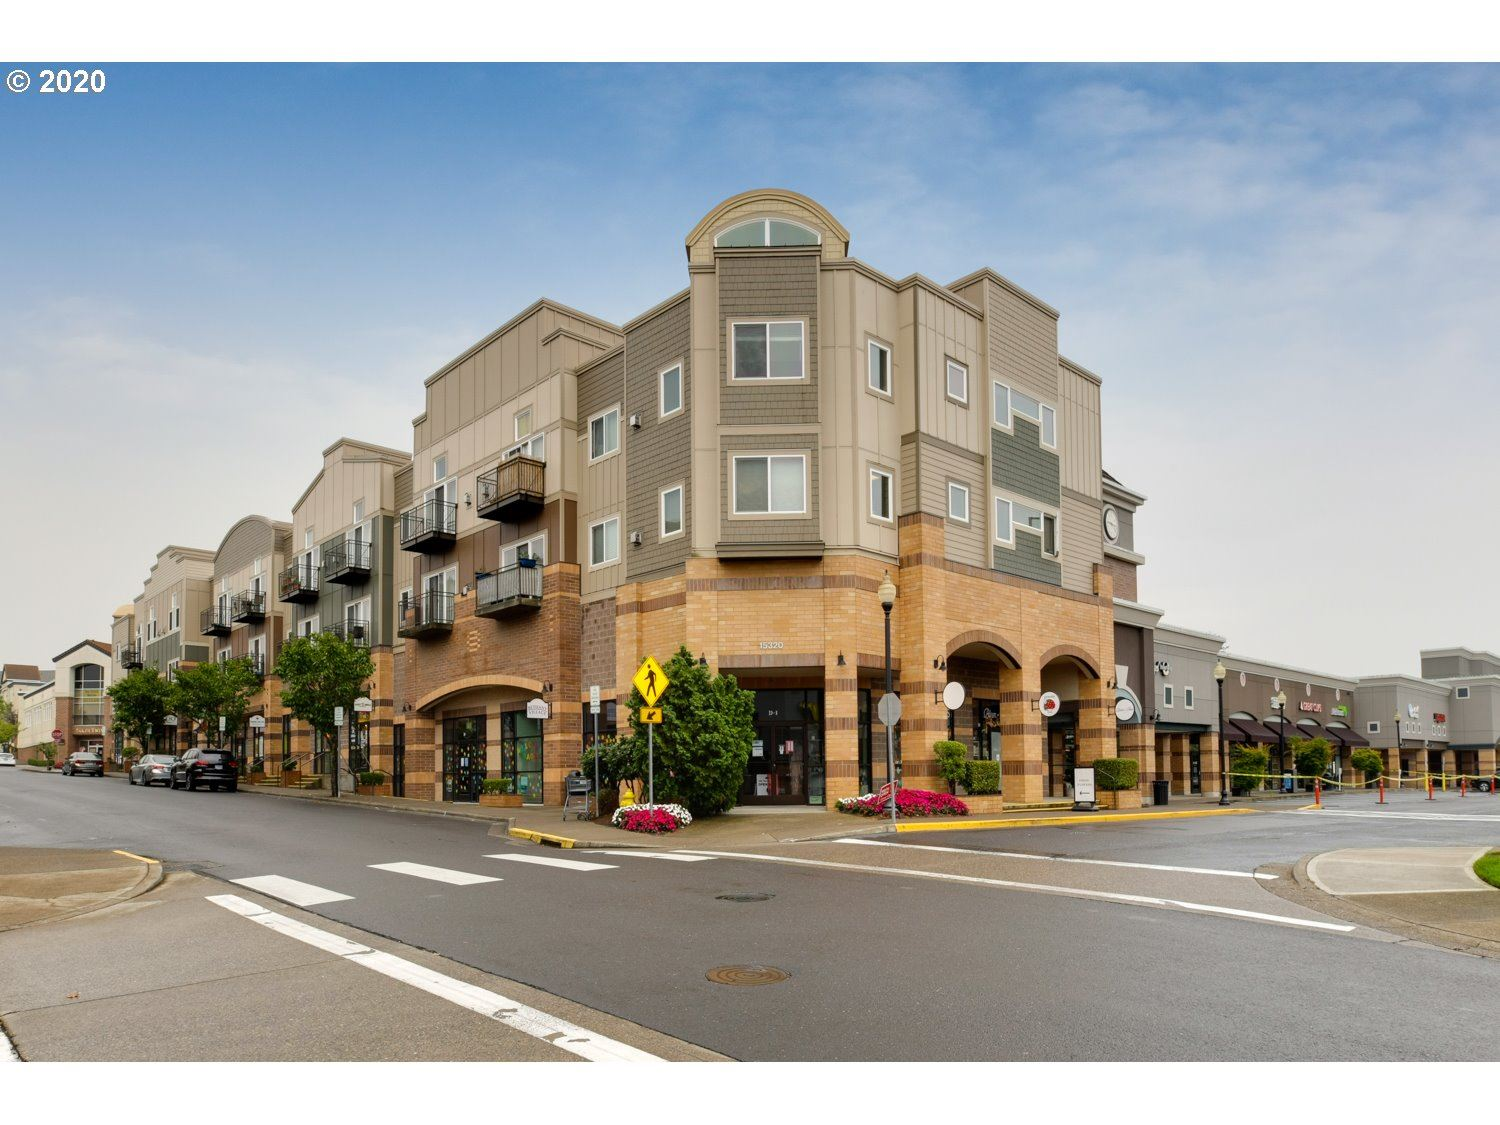 15320 NW CENTRAL DR #226, Portland, OR 97229 - MLS#: 20359915